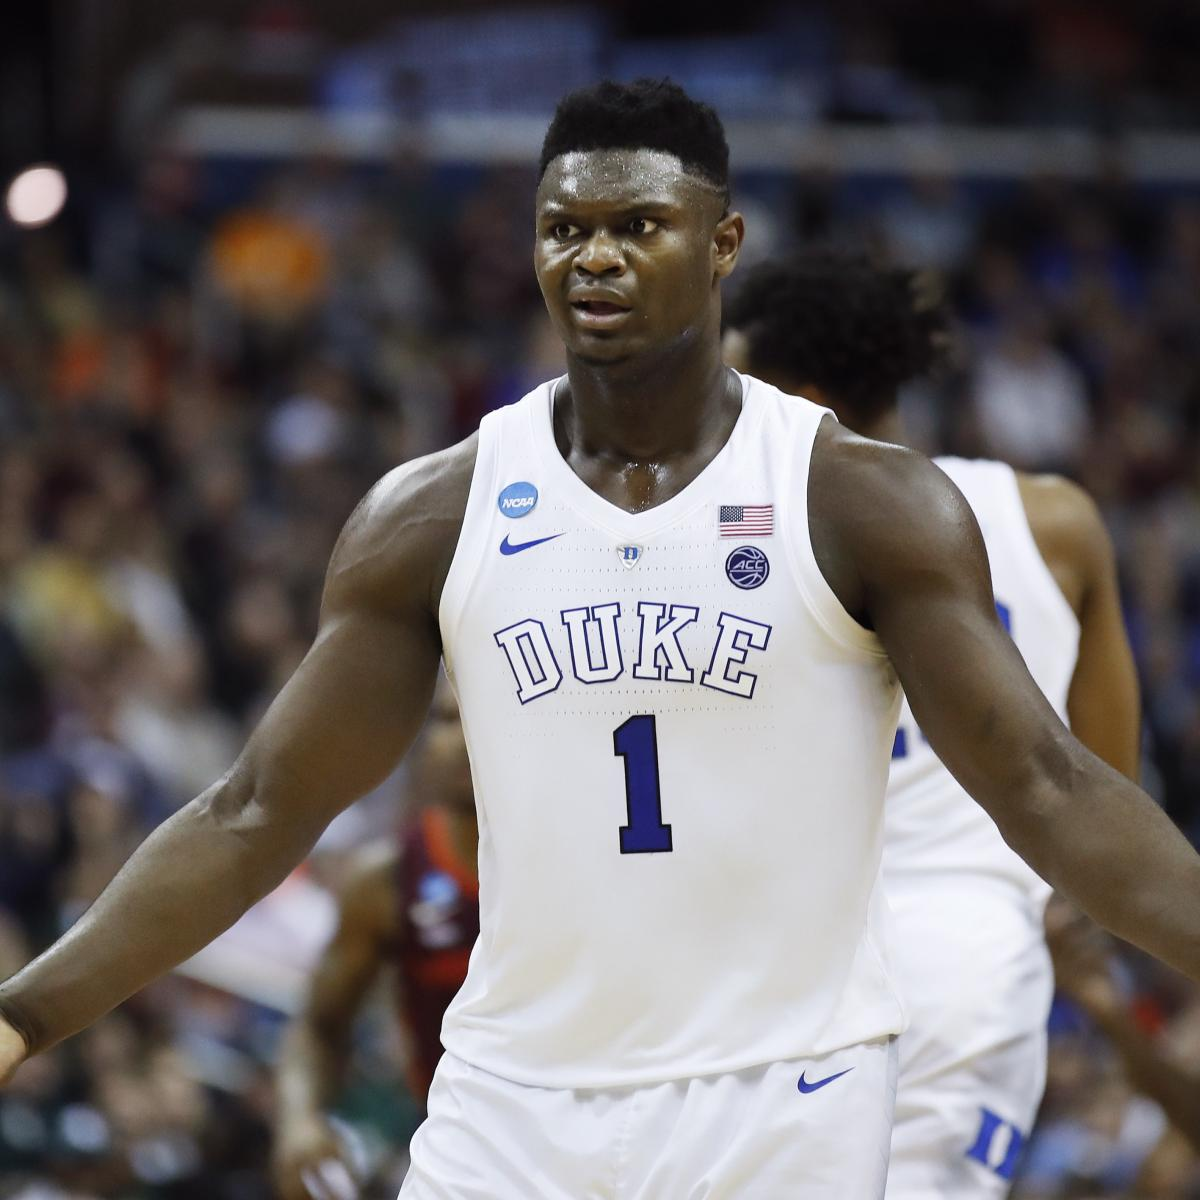 NBA Draft 2019: Date, Selection Order, Lottery Predictions